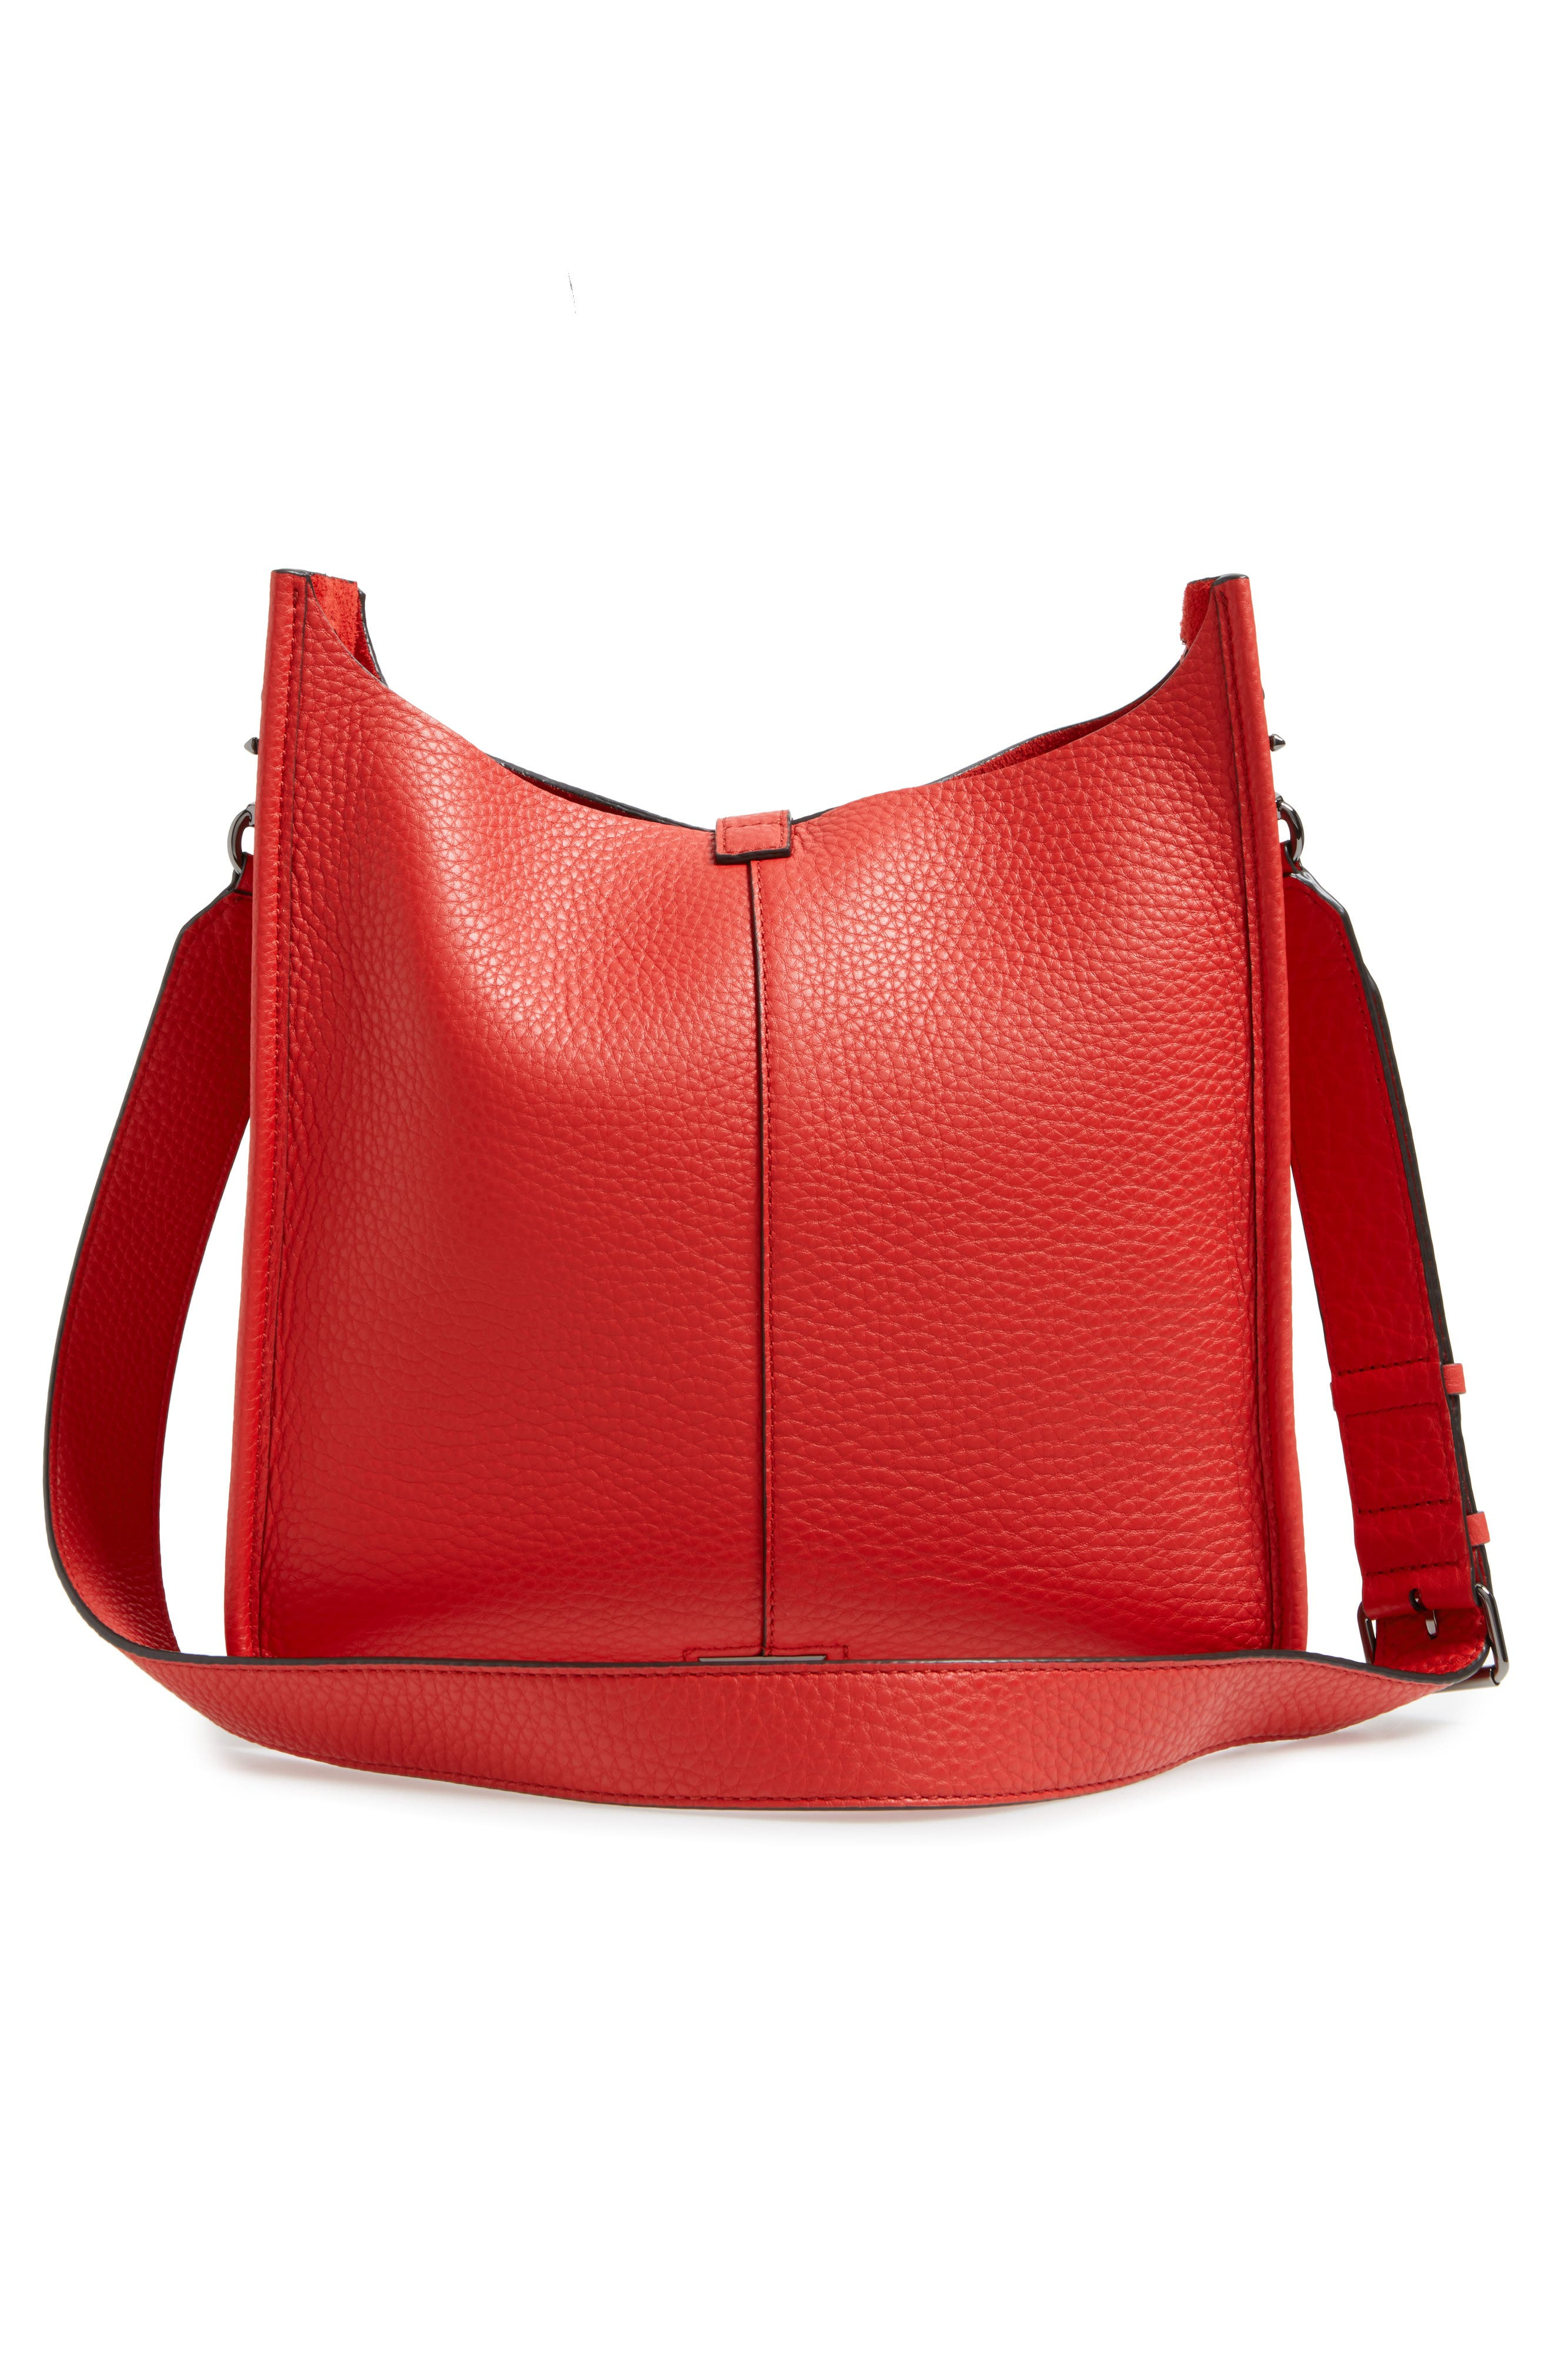 Alternate Image 3  - Rebecca Minkoff Unlined Whipstitch Feed Bag